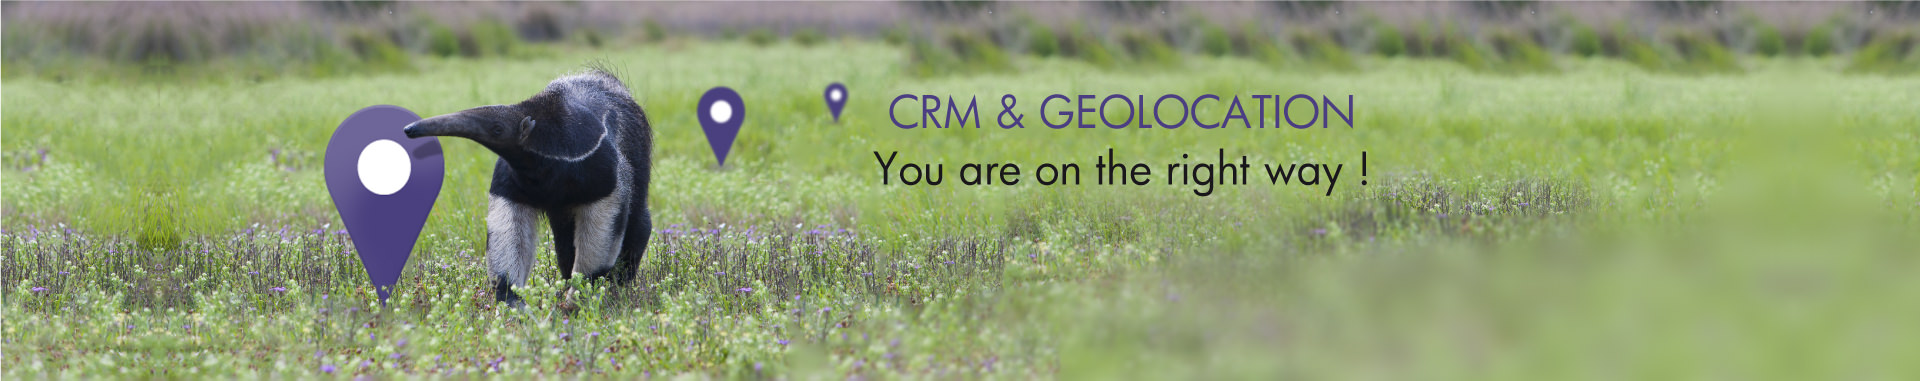 CRM Geolocation